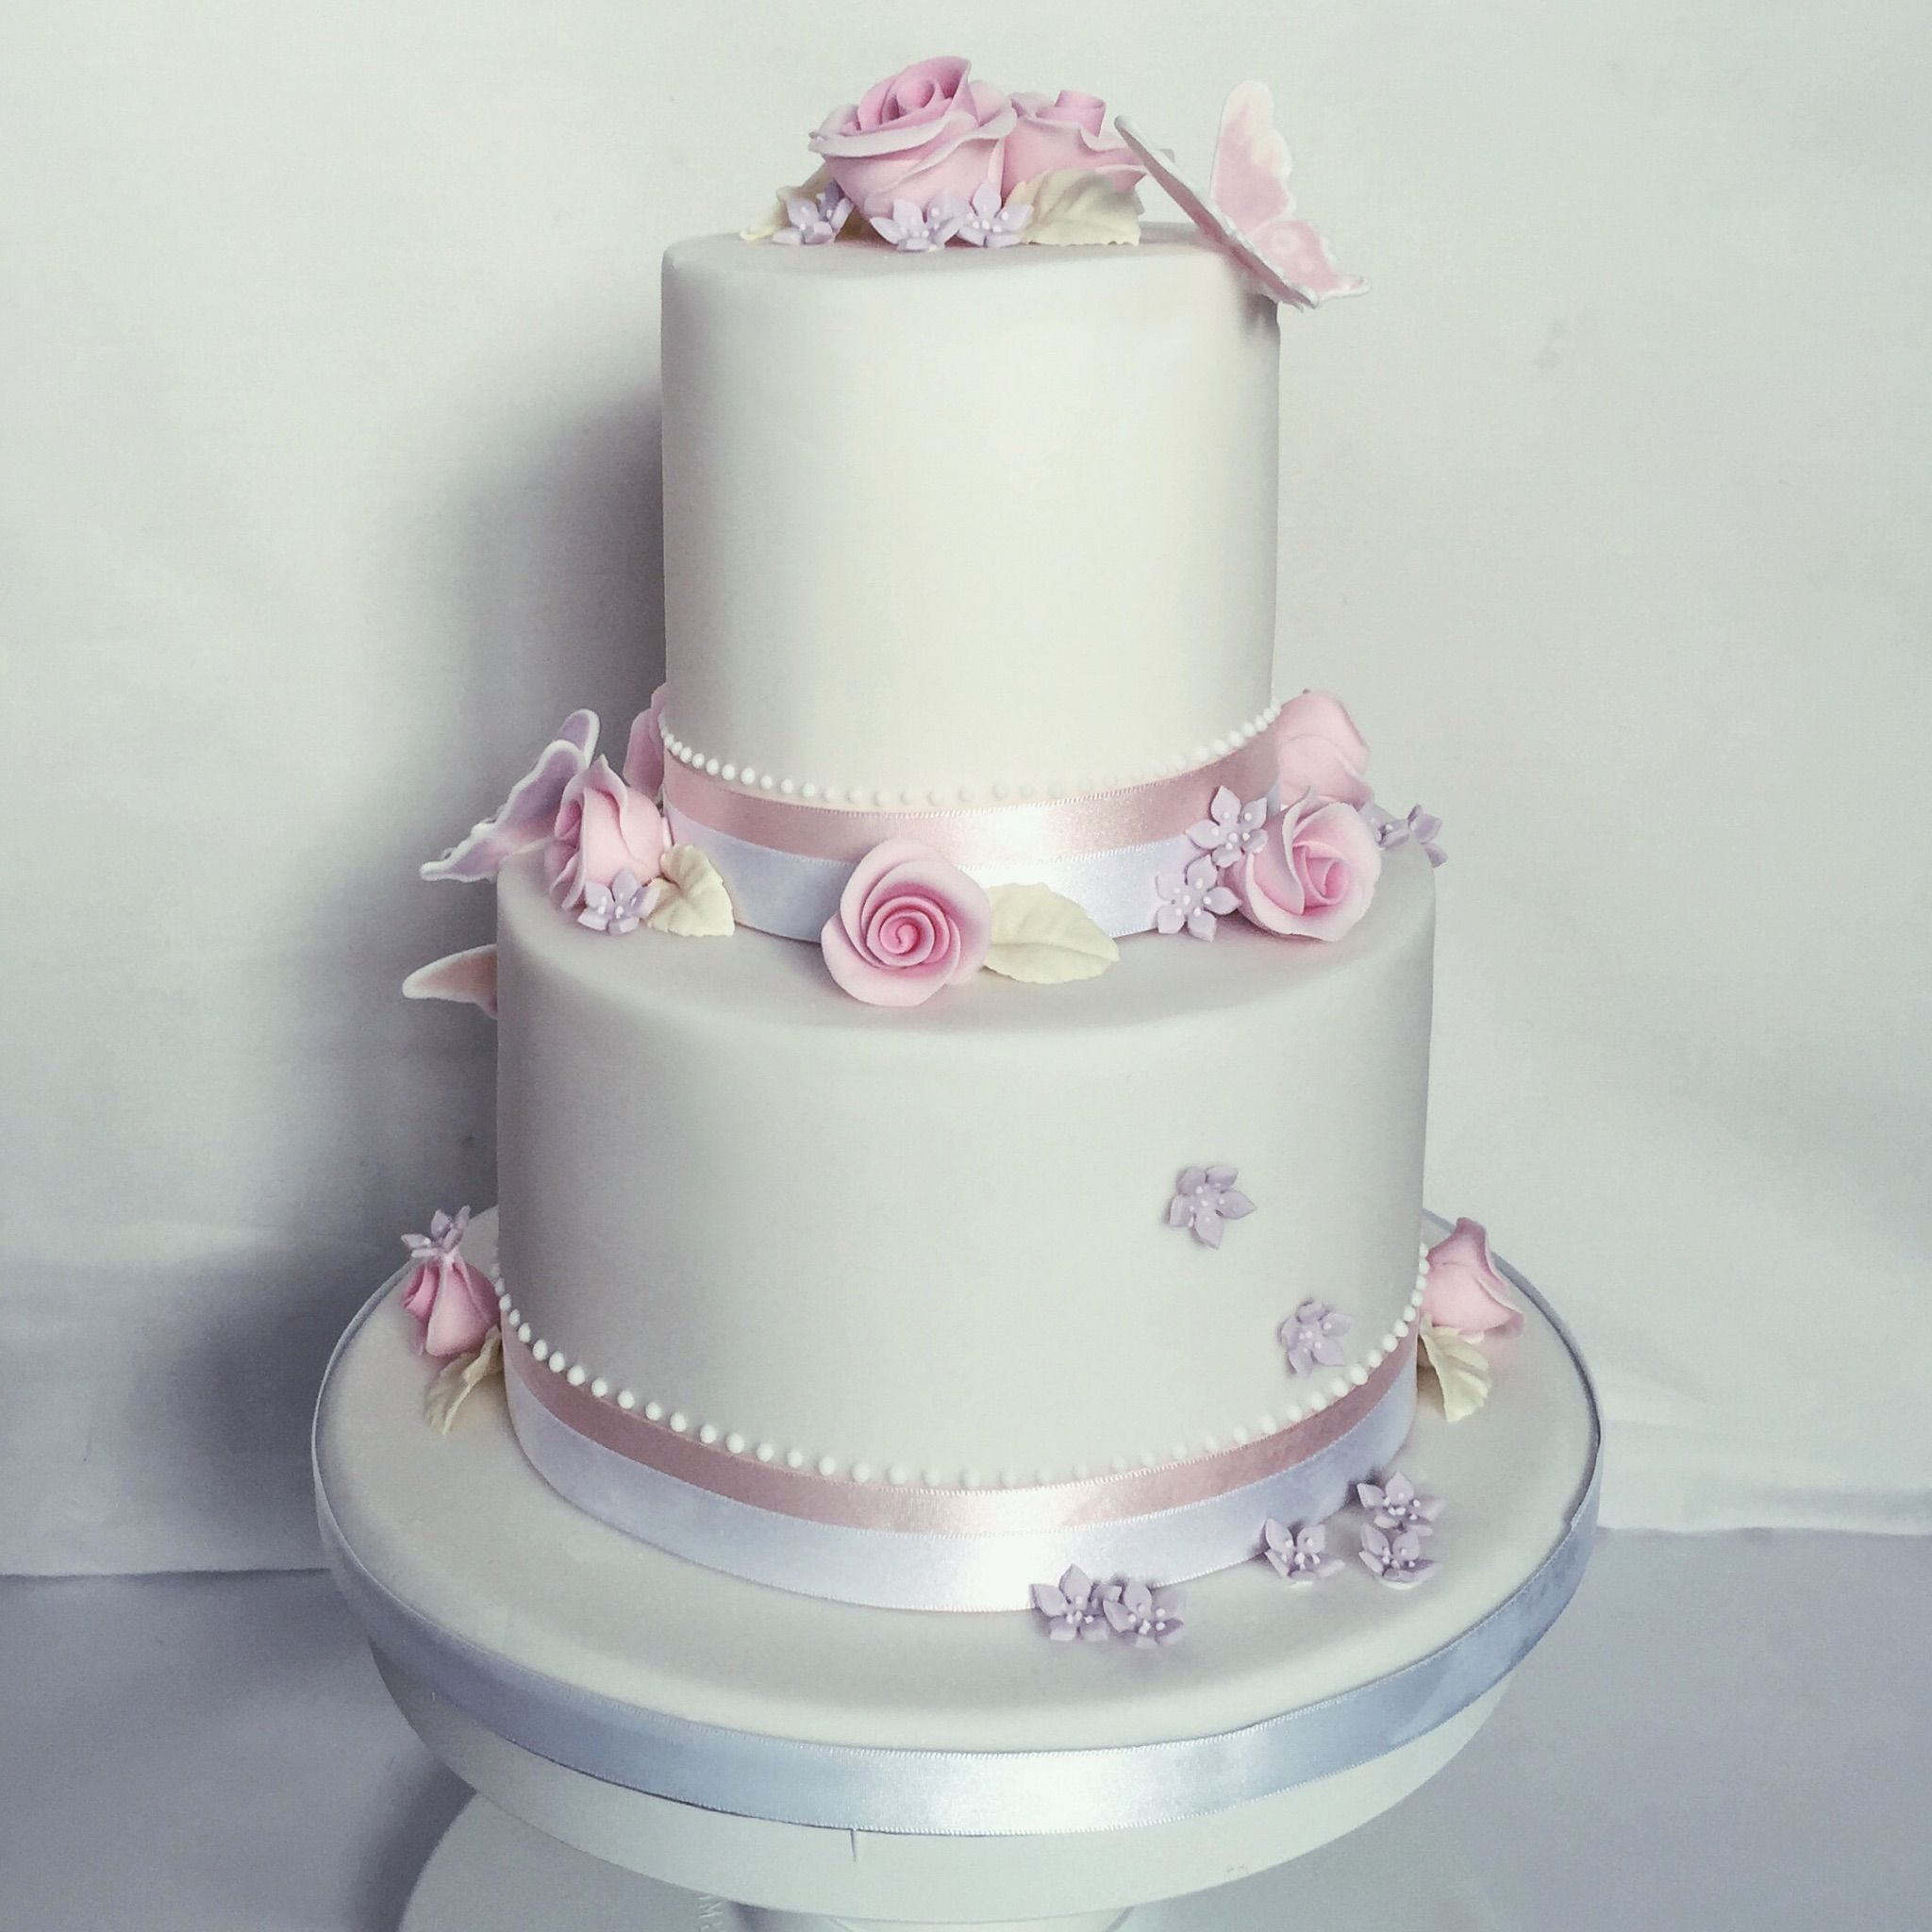 Decorated Cake with Roses and Butterflies made by Rose Brittney